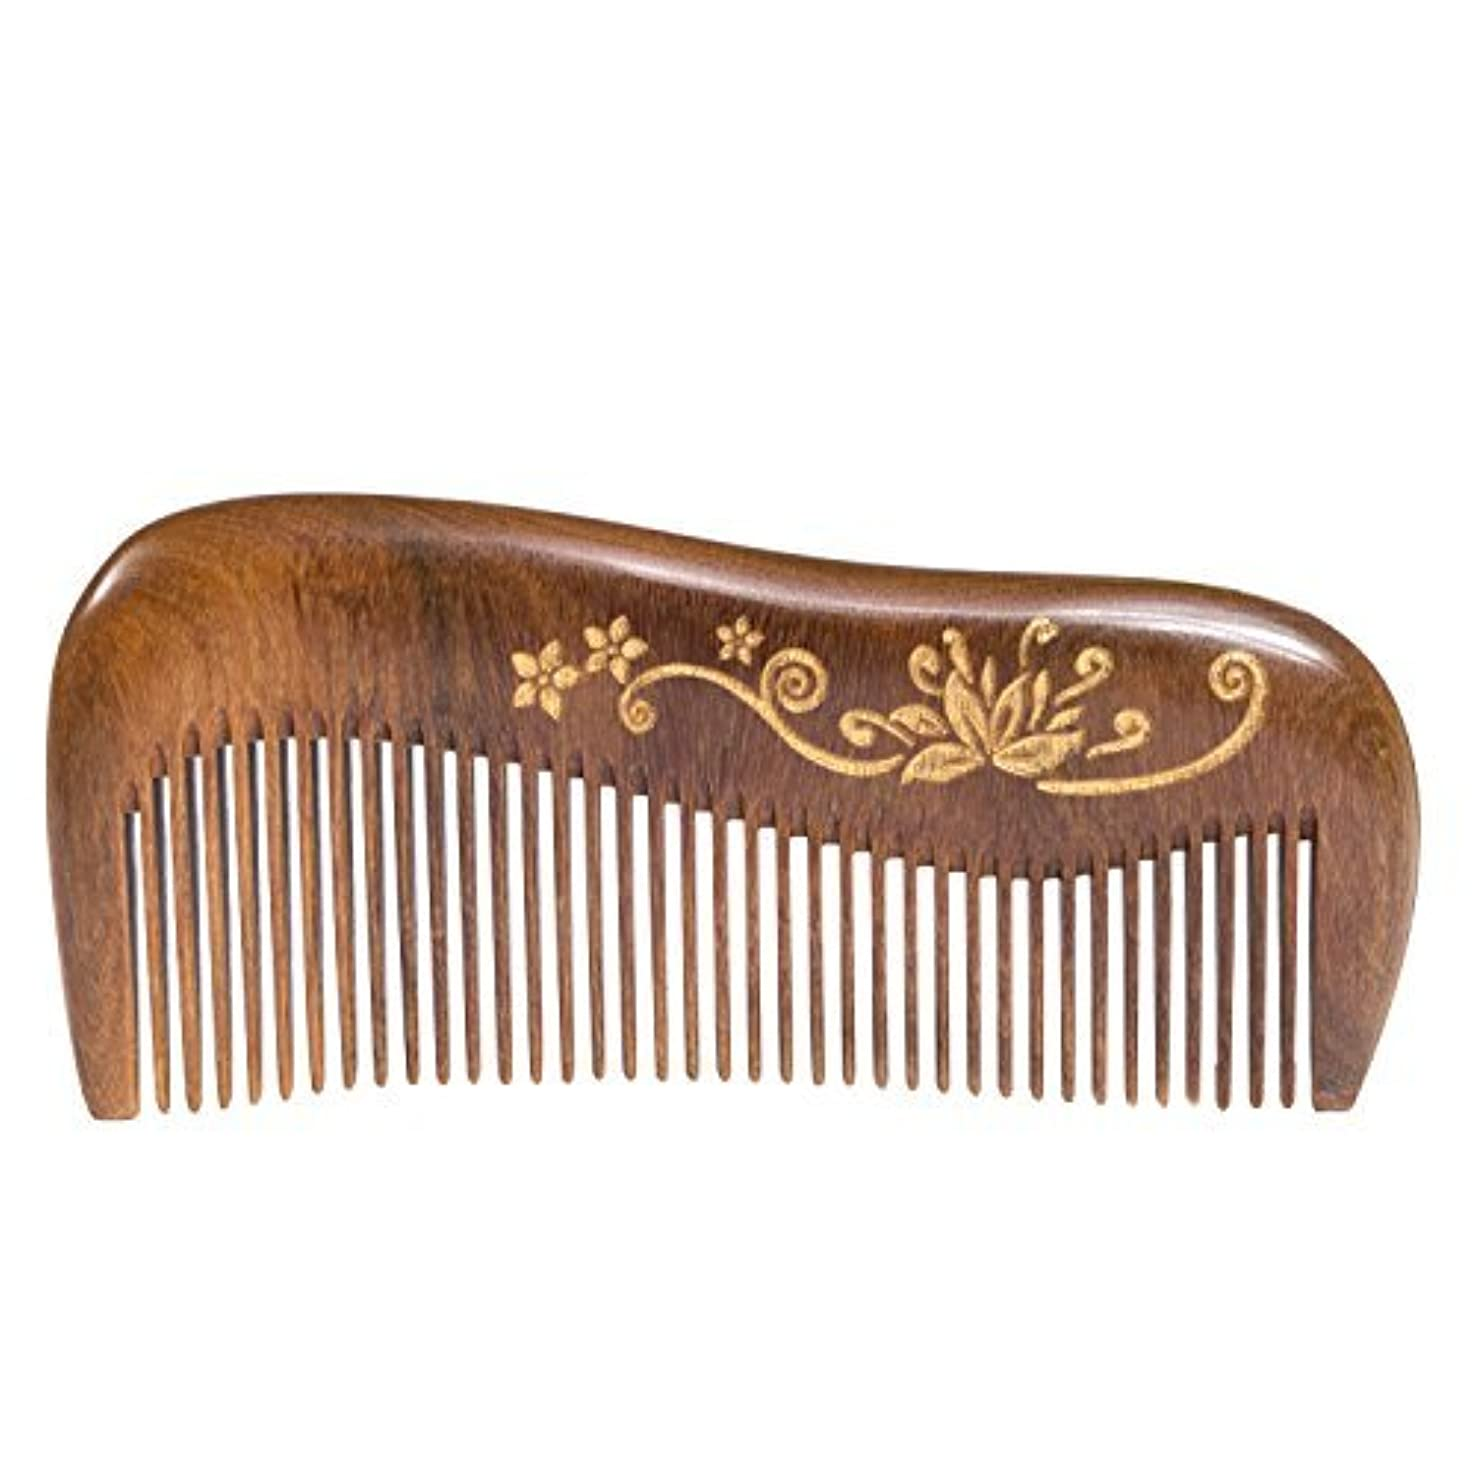 Breezelike Wooden Hair Comb - Fine Tooth Wood Comb for Women - No Static Natural Detangling Sandalwood Comb [並行輸入品]